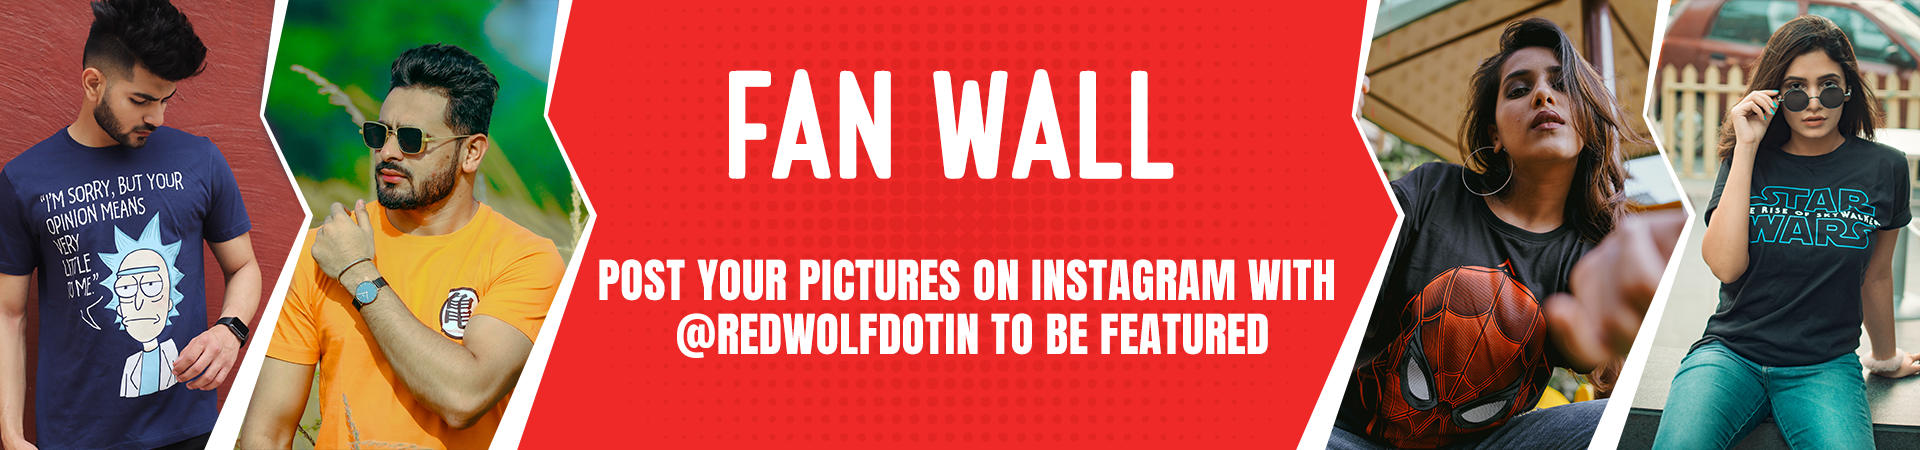 Fan Wall - Category Banner